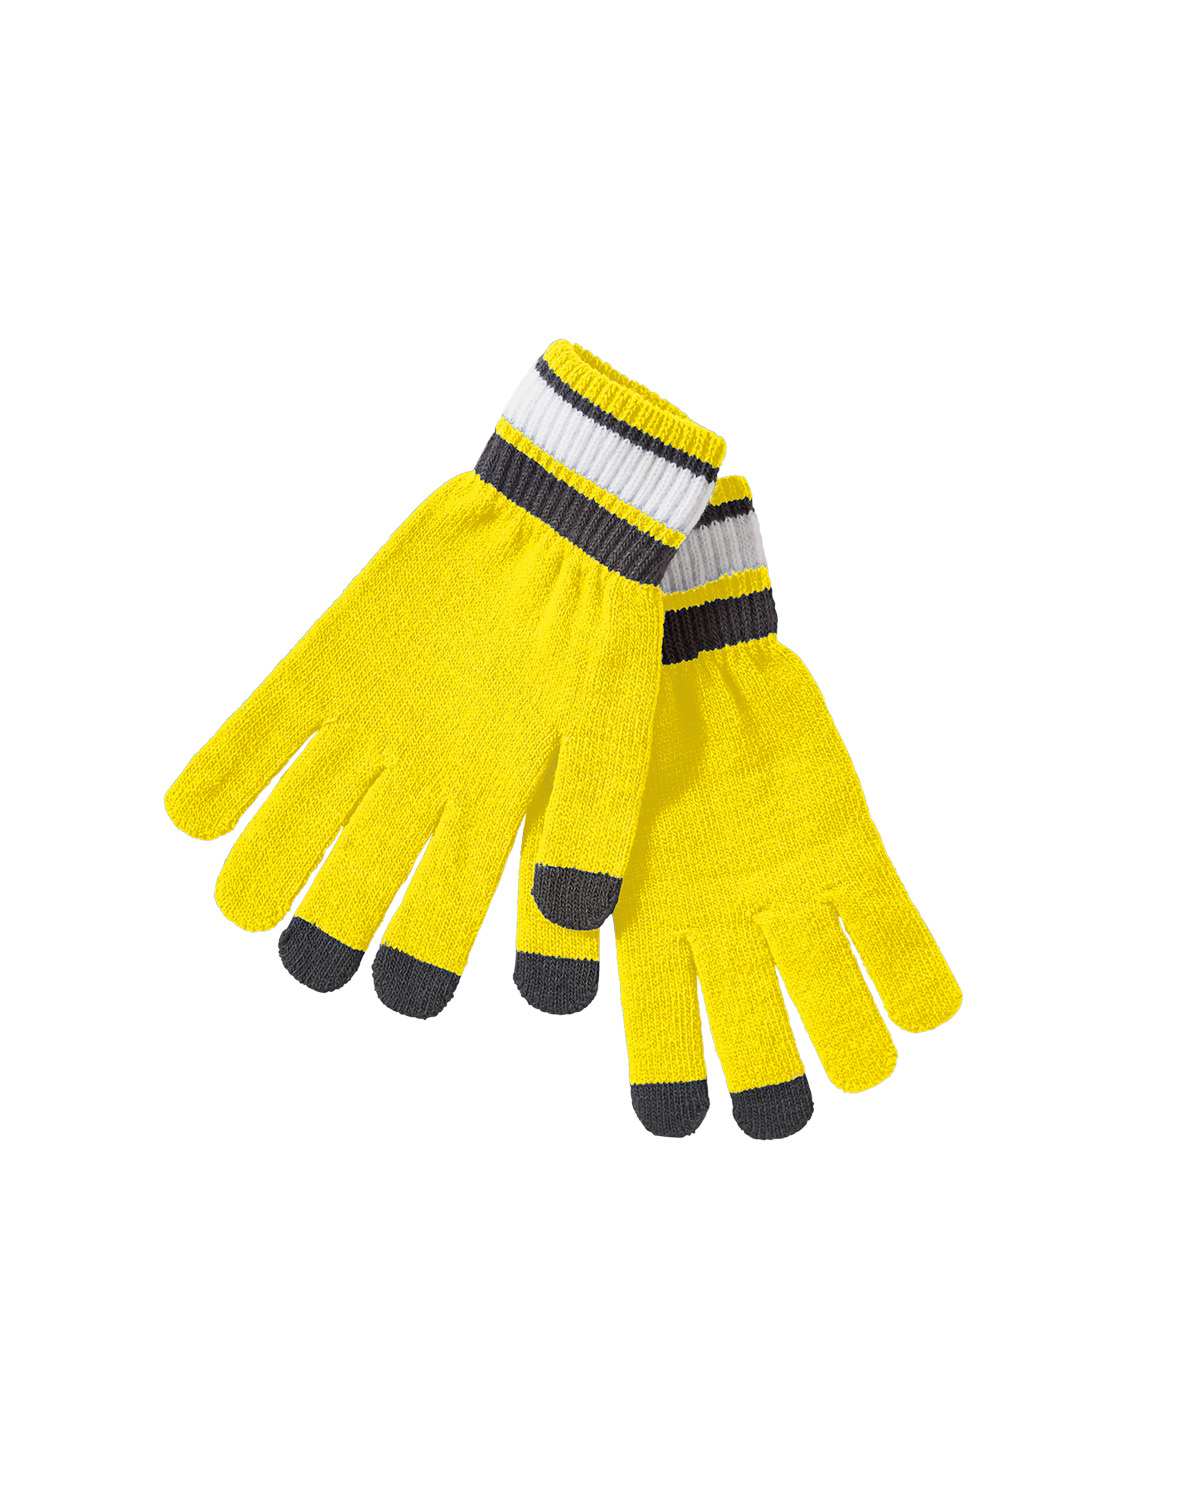 Holloway 223838 - Acrylic Rib Knit Comeback Gloves